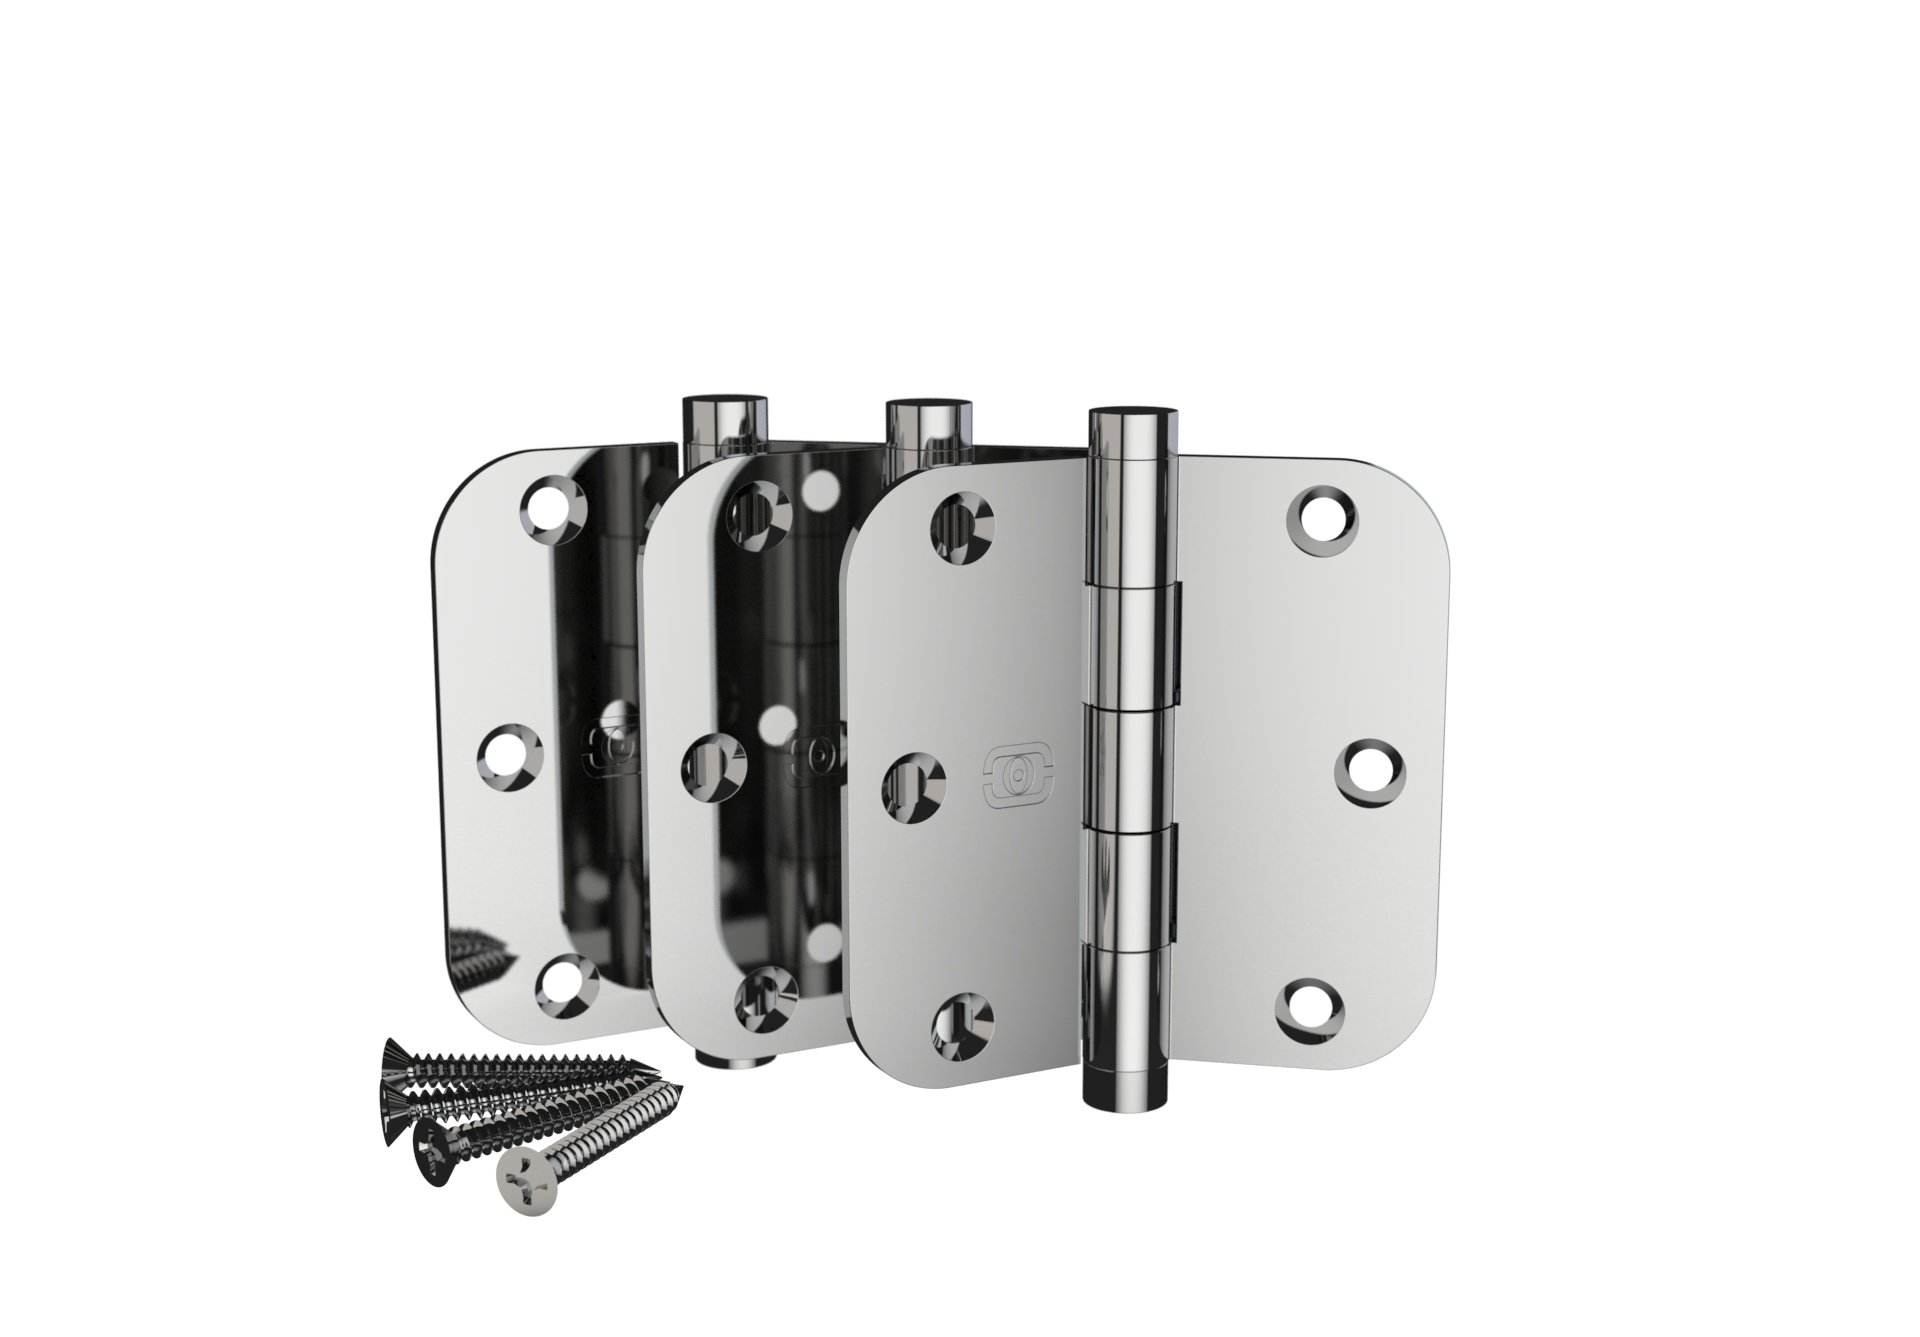 3 Pack Omnia 3 1/2 x 3 1/2 Extruded Solid Brass Door Hinge 5/8'' Radius Corner with Button Tip US26 Finish (Polished Chrome) by Omnia